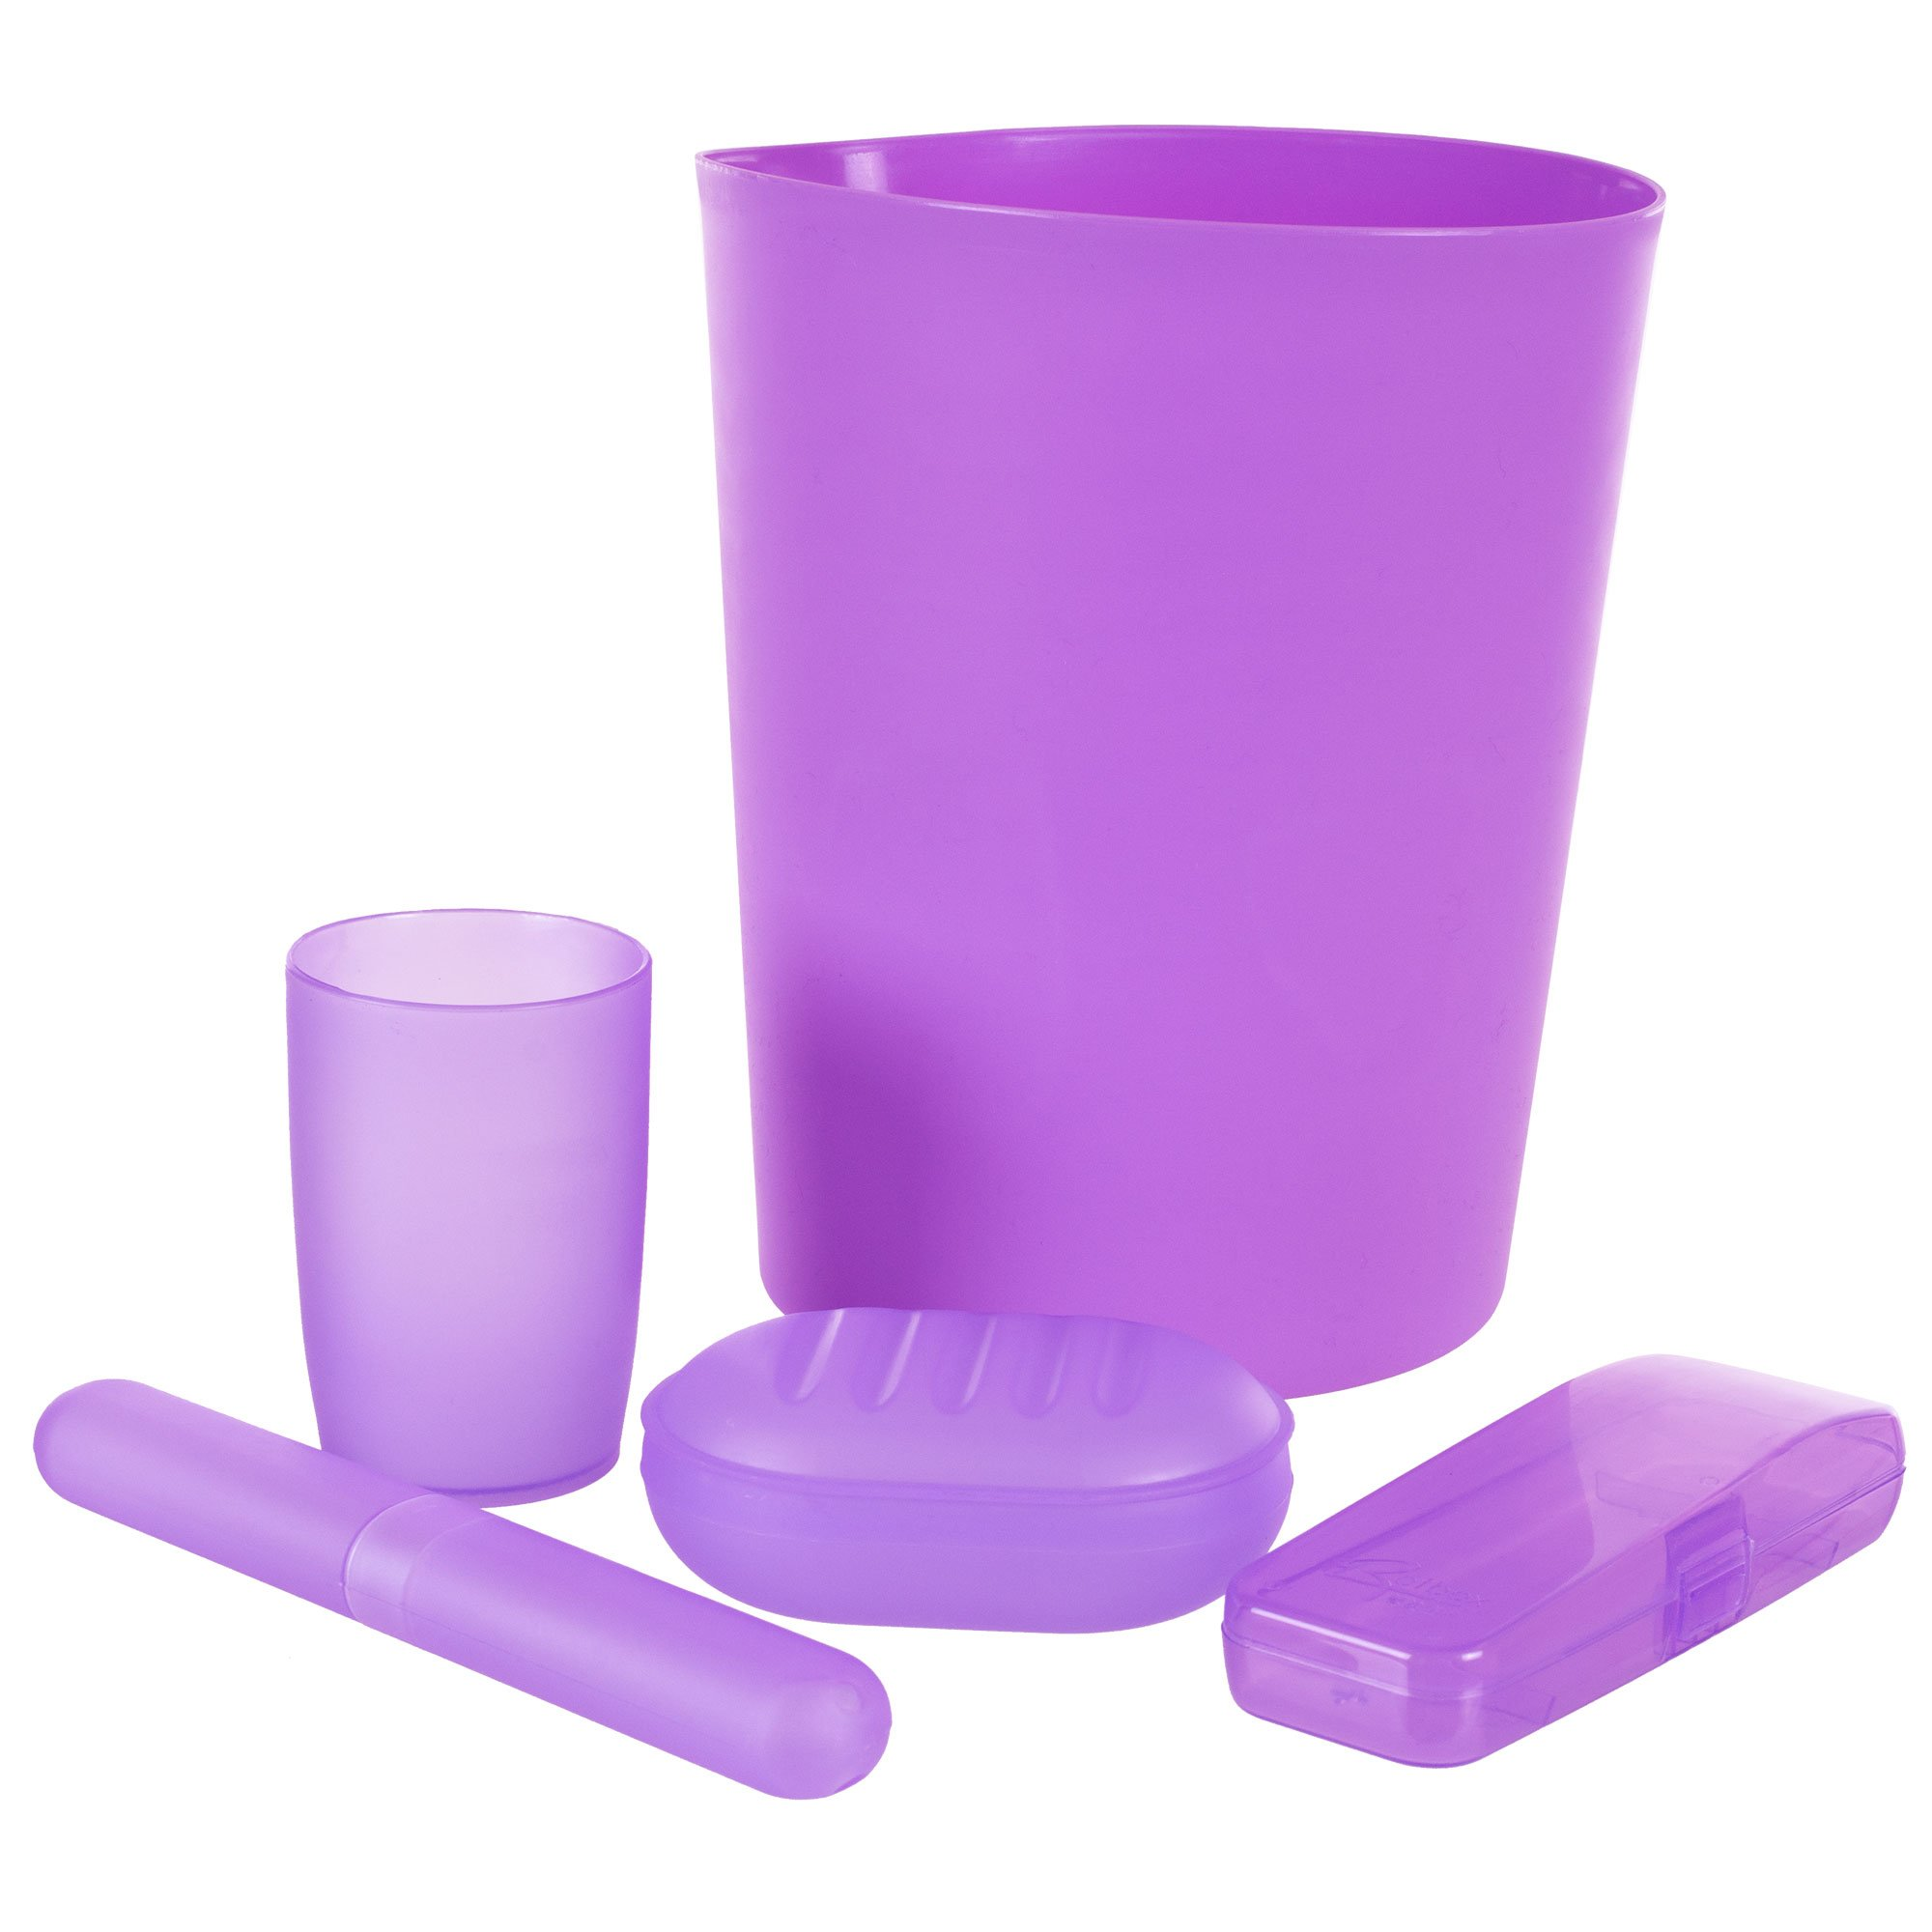 Everyday Home 5-Piece Bathroom Waste Basket and Toiletry Set, Purple